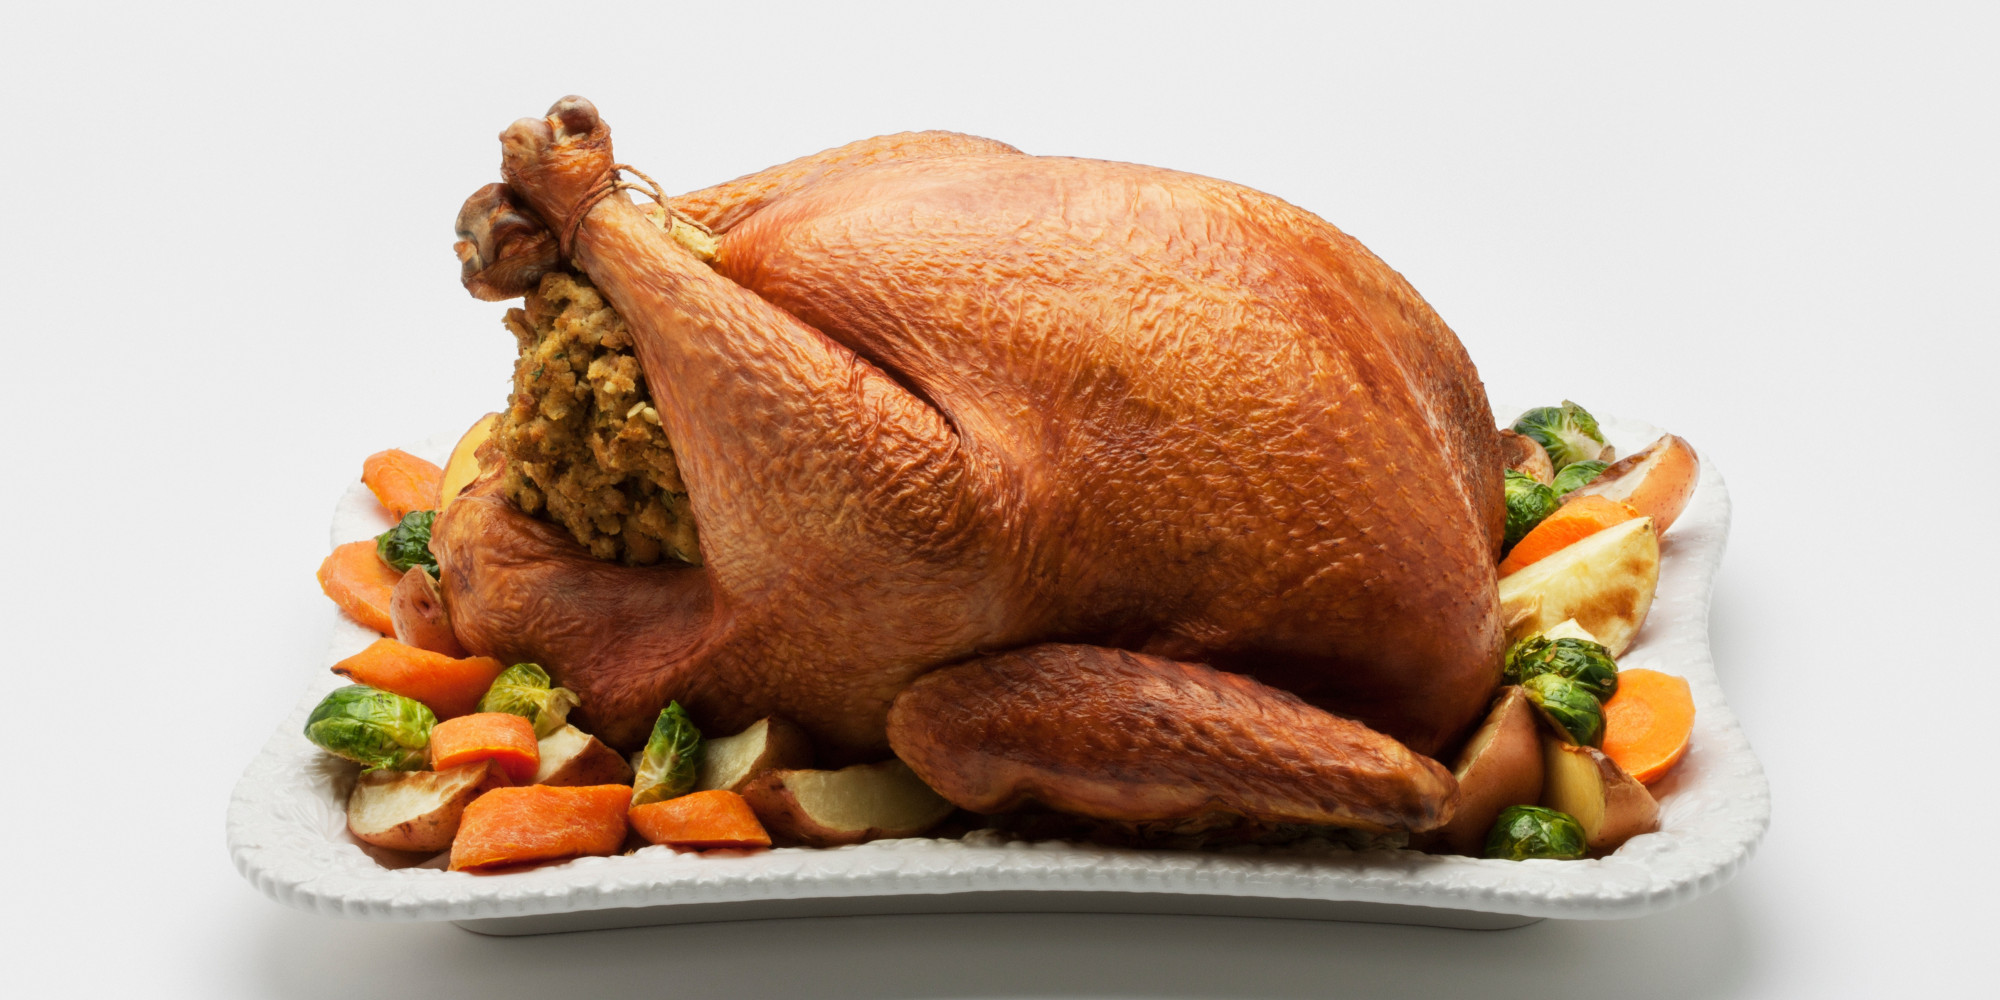 Tryptophan making you sleepy is a big fat lie huffpost for Why do we eat turkey on thanksgiving